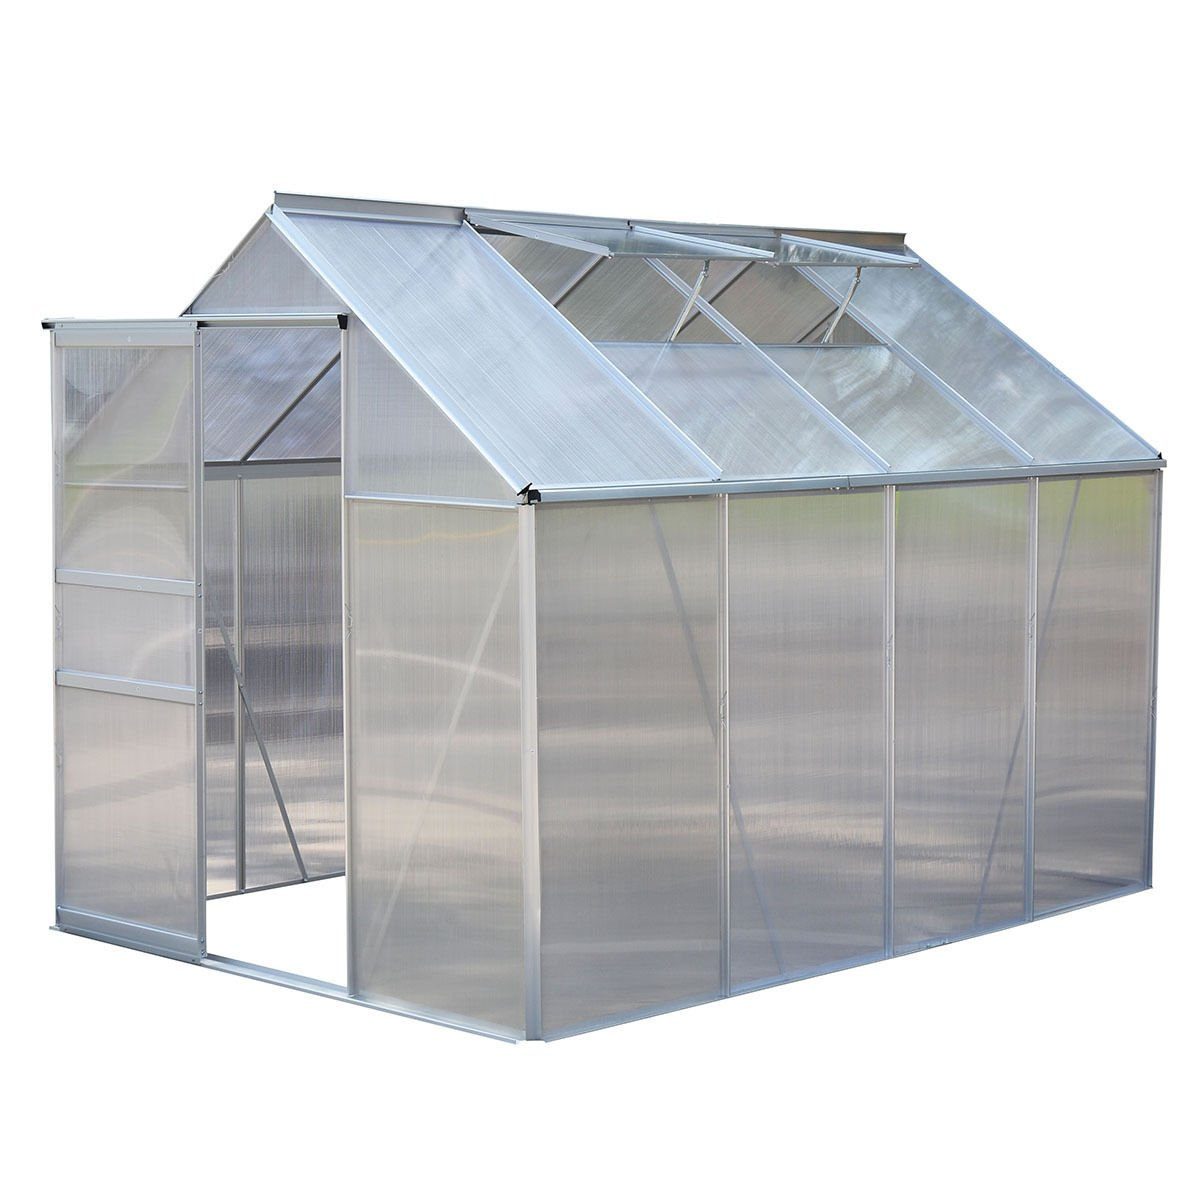 Giantex 8.2x6.2Ft Greenhouse Aluminum Frame All Weather Walk-In Heavy Duty Polycarbonate